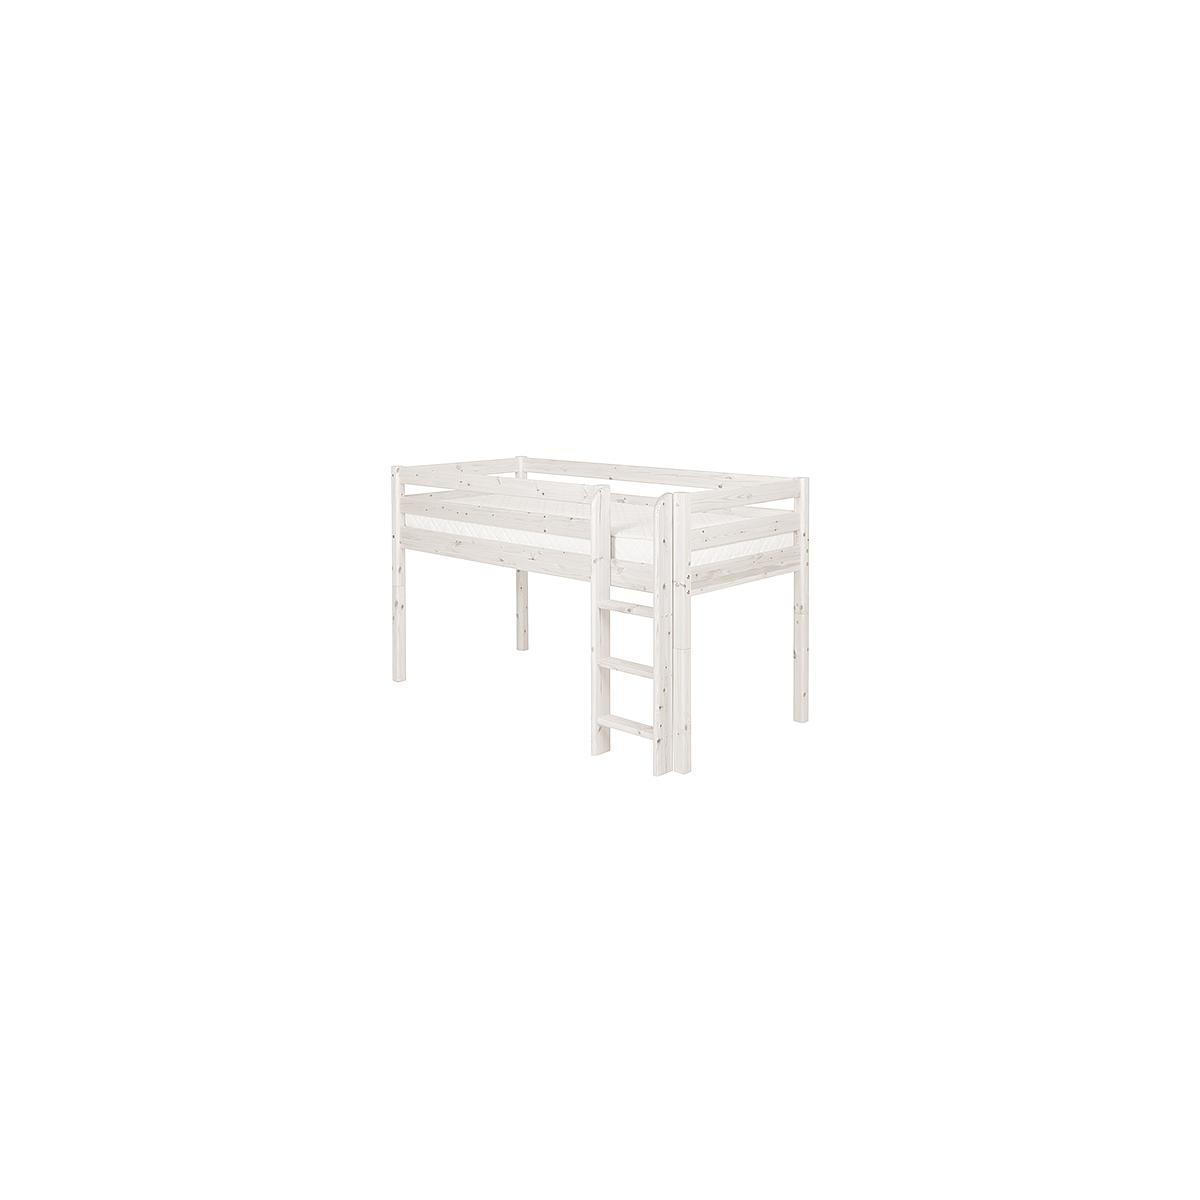 Cama media alta 90x200 CLASSIC Flexa escalera recta blanco cal